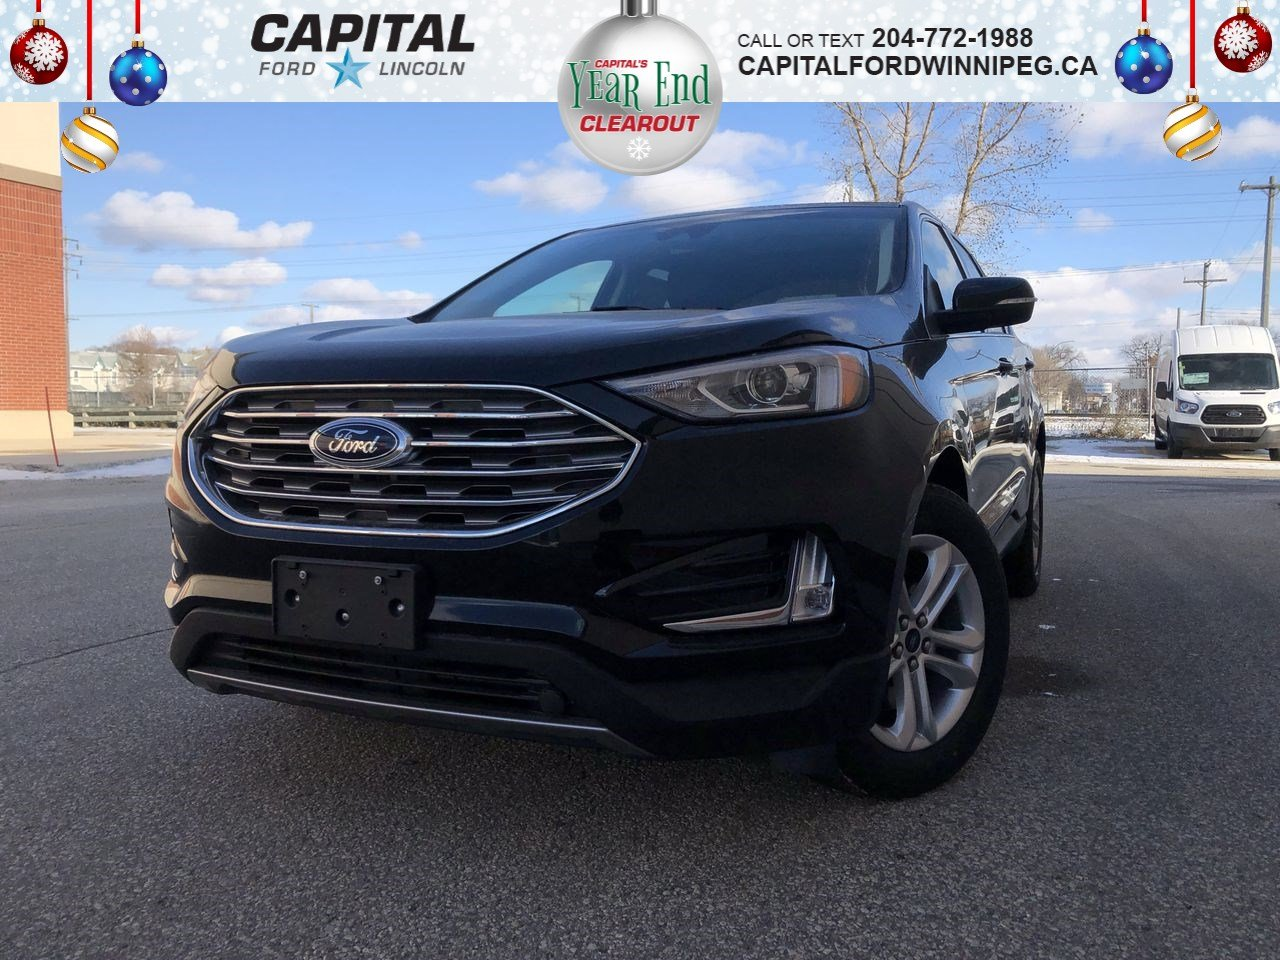 New 2019 Ford Edge SEL*AWD*Navigation*Heated Seats*Panoramic Roof*Rearview Camera